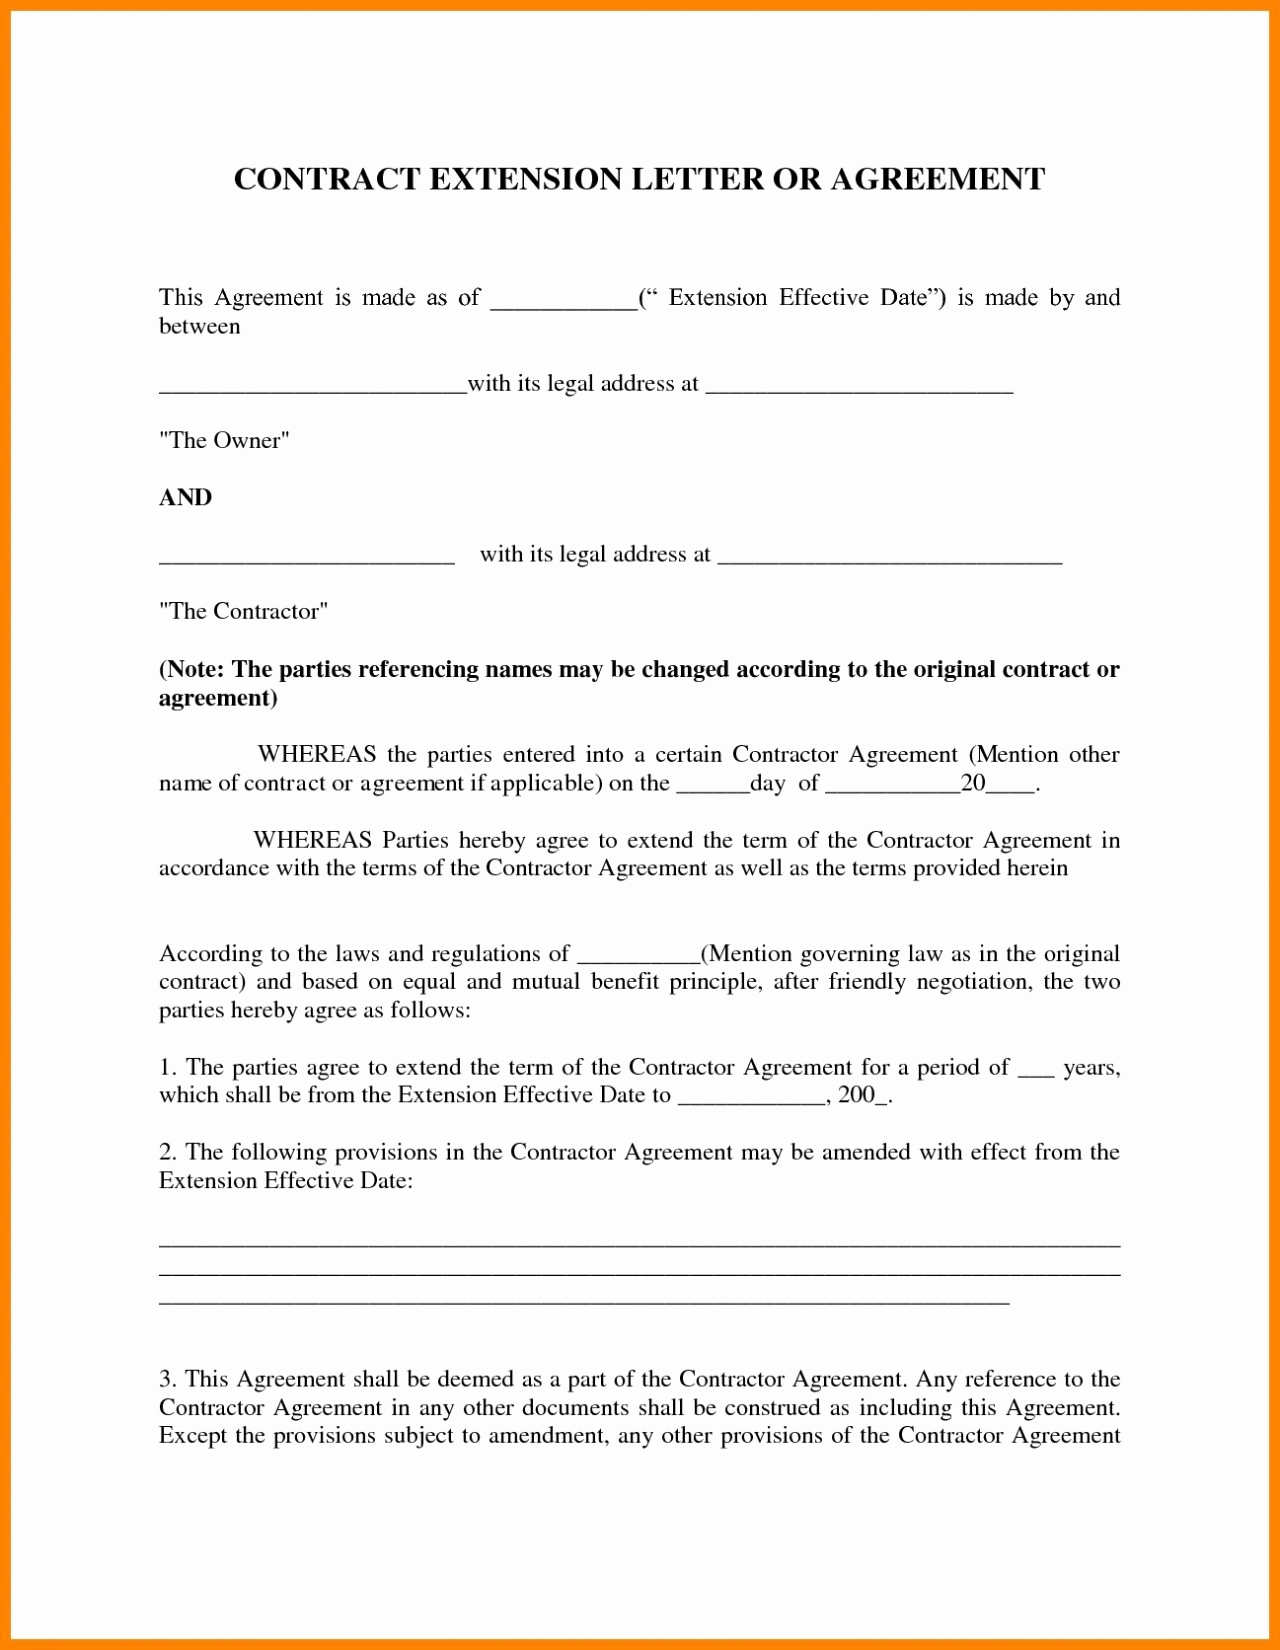 Lease Extension Letter Template - Renewal Lease Agreement Template 19 Partnership Agreement California